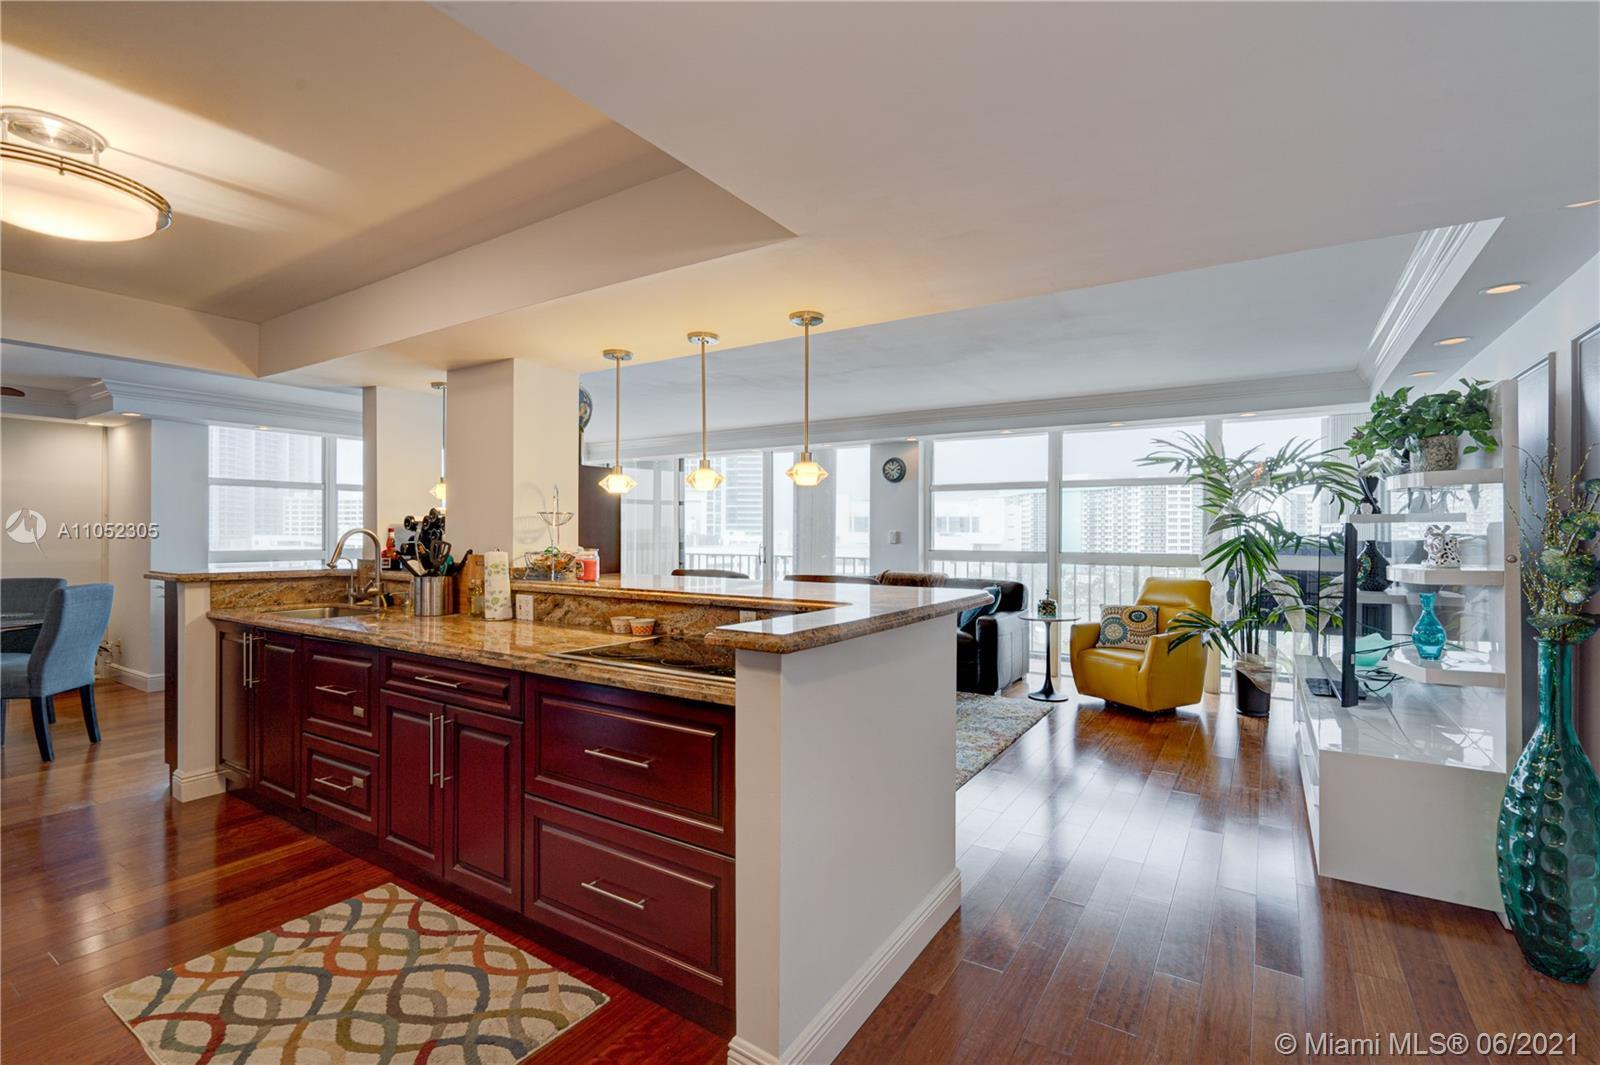 Stunning unit. Amazing Intracoastal, bay and city view. Watch the boats passing by. Floor to ceiling